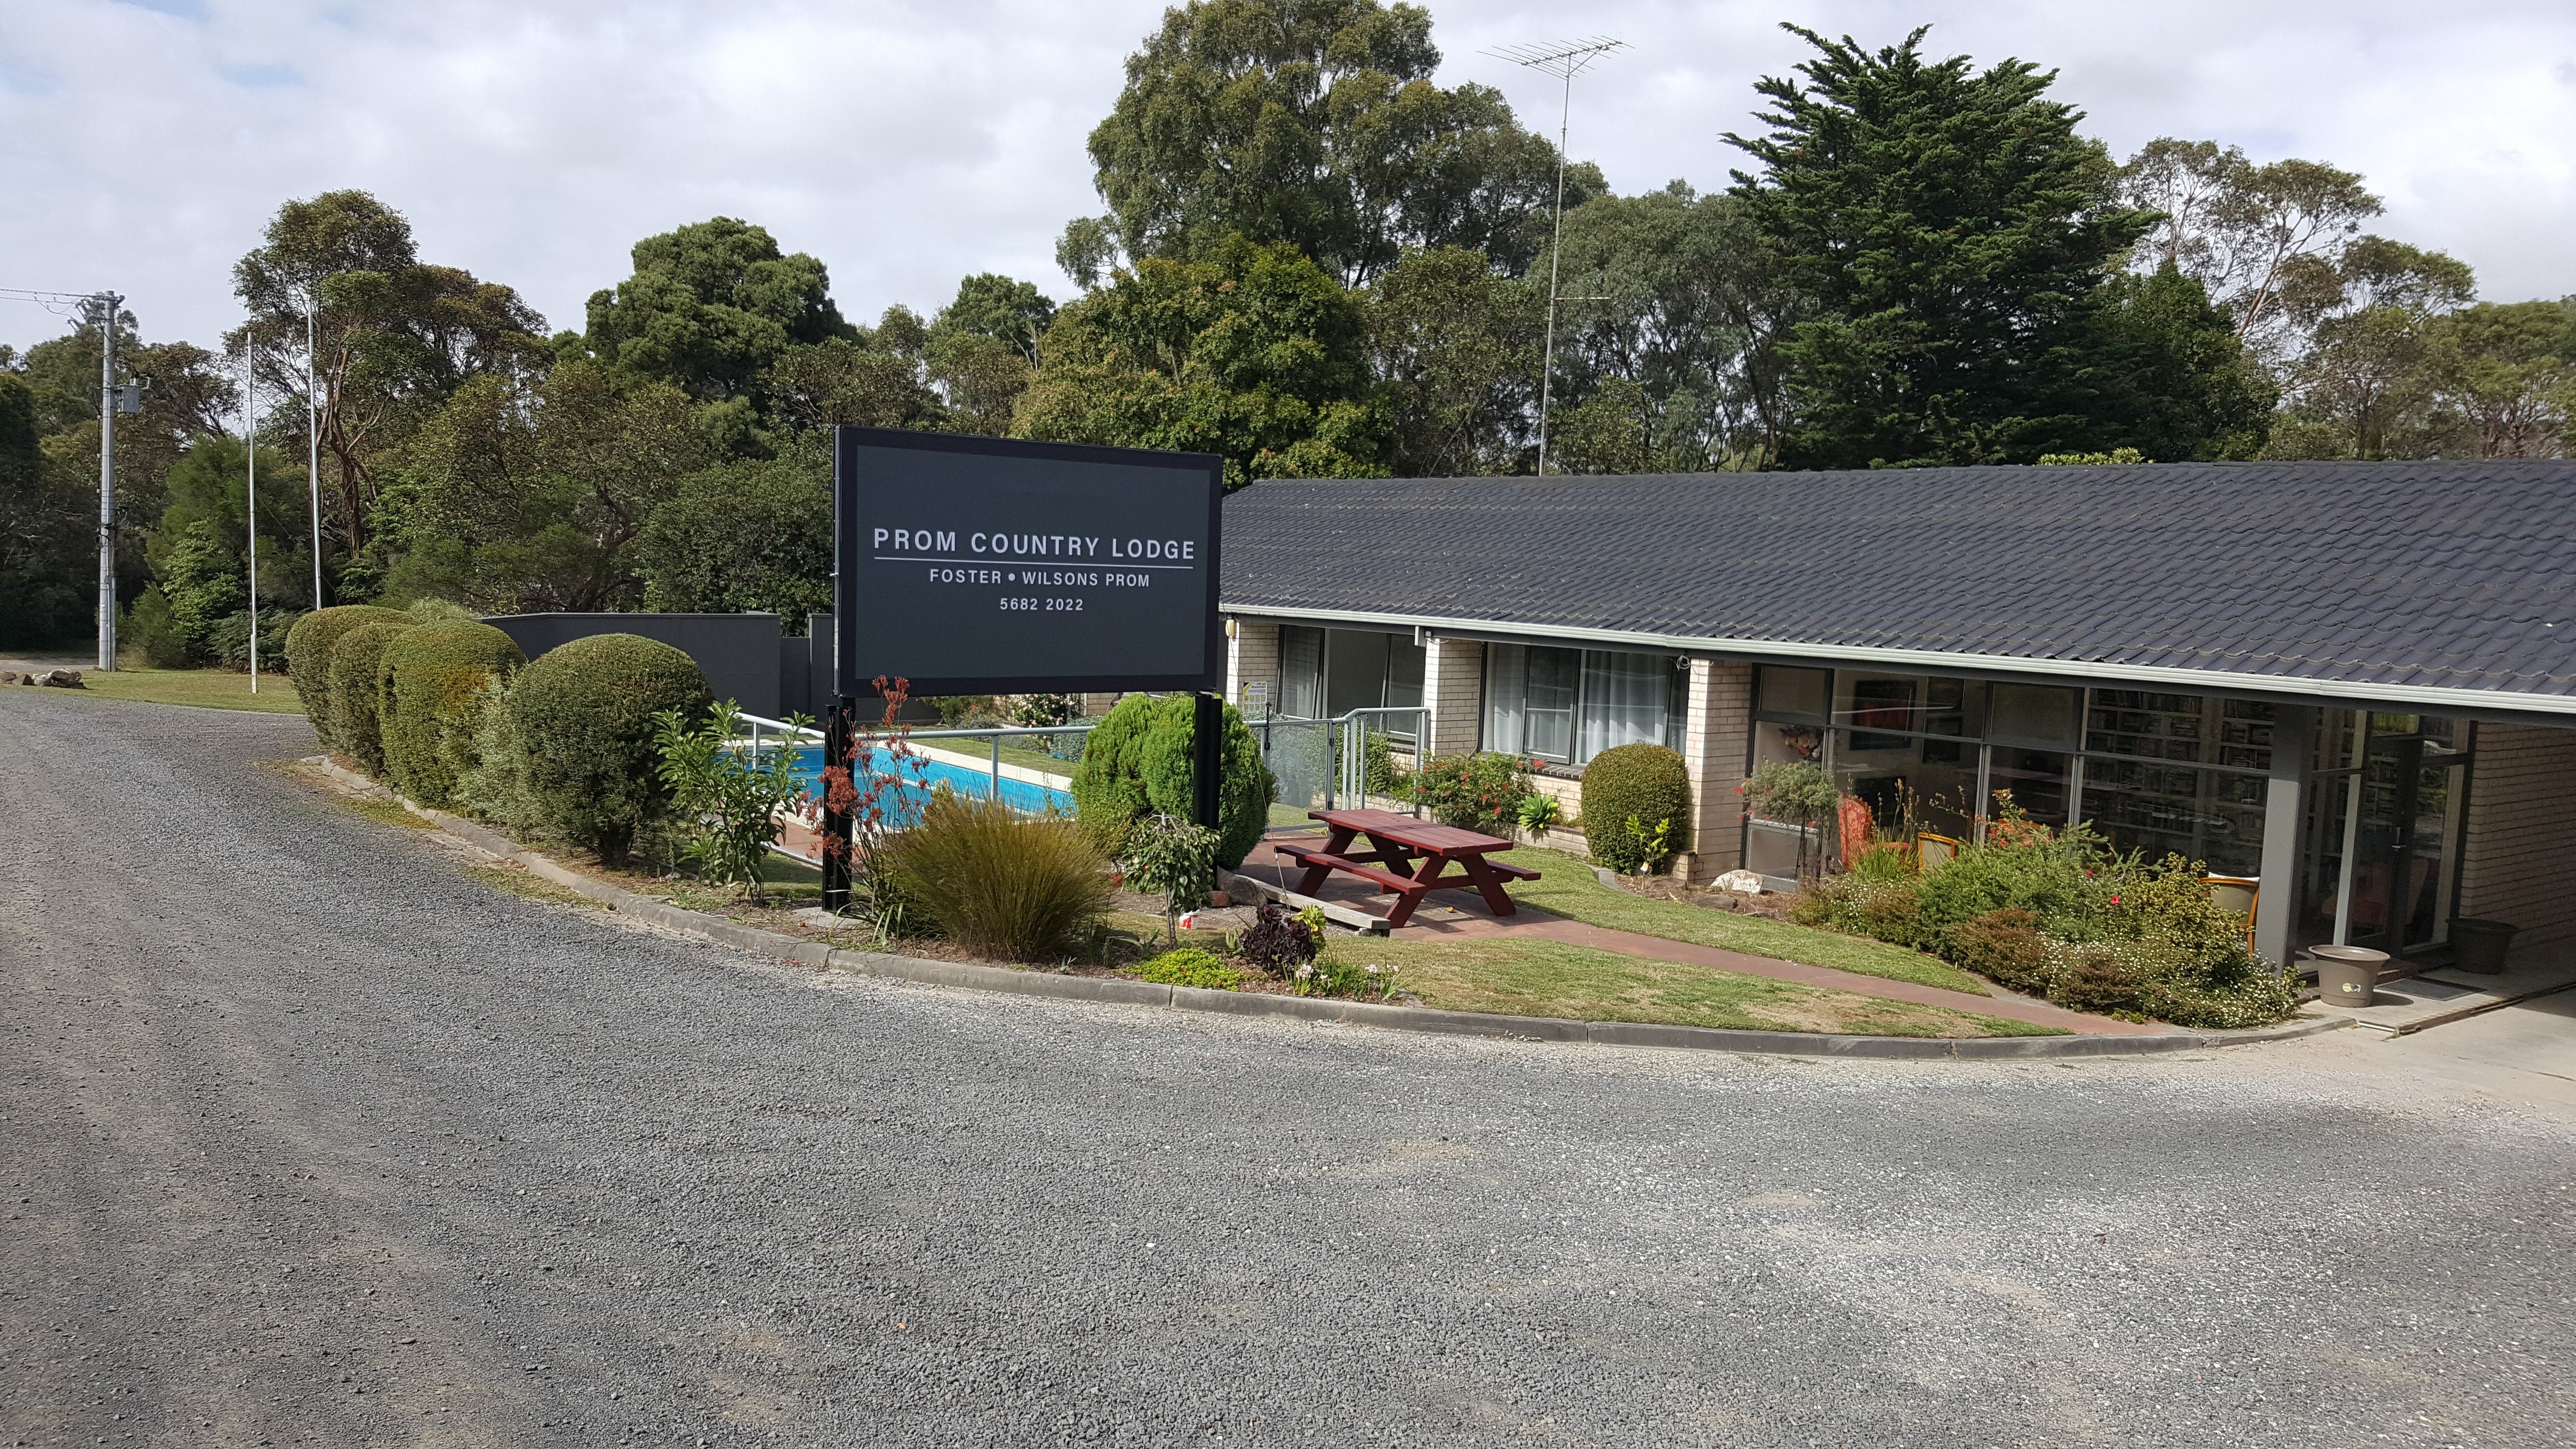 Prom Country Lodge - Accommodation Coffs Harbour